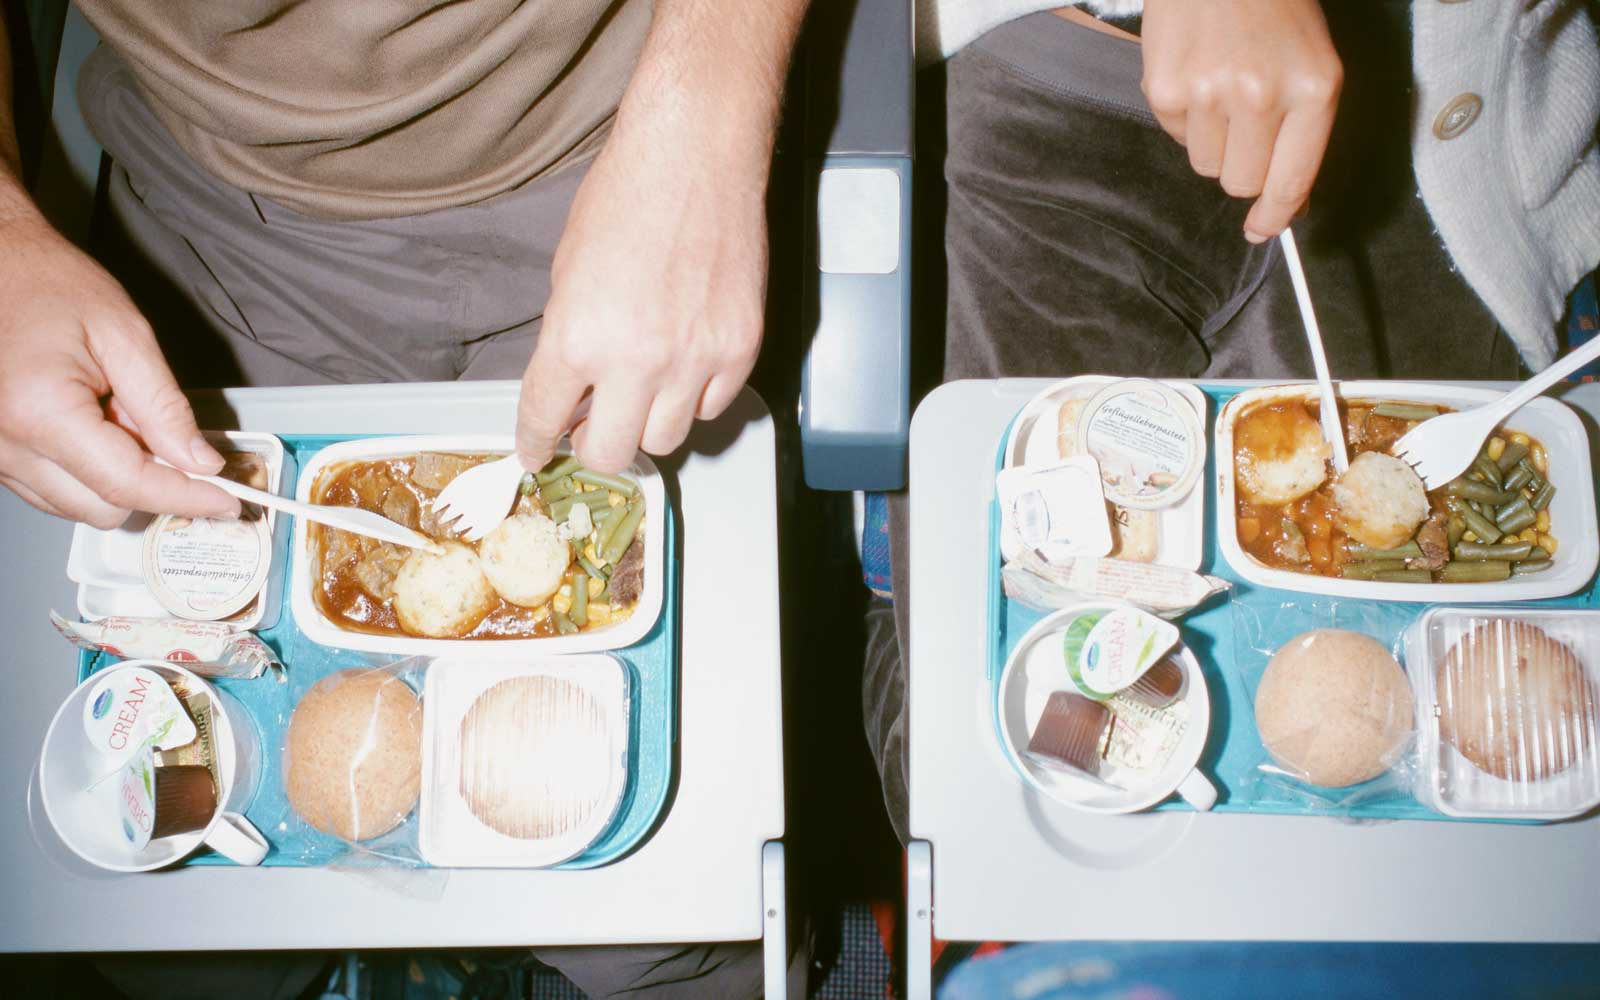 What You Should and Should Not Order From the In-flight Menu